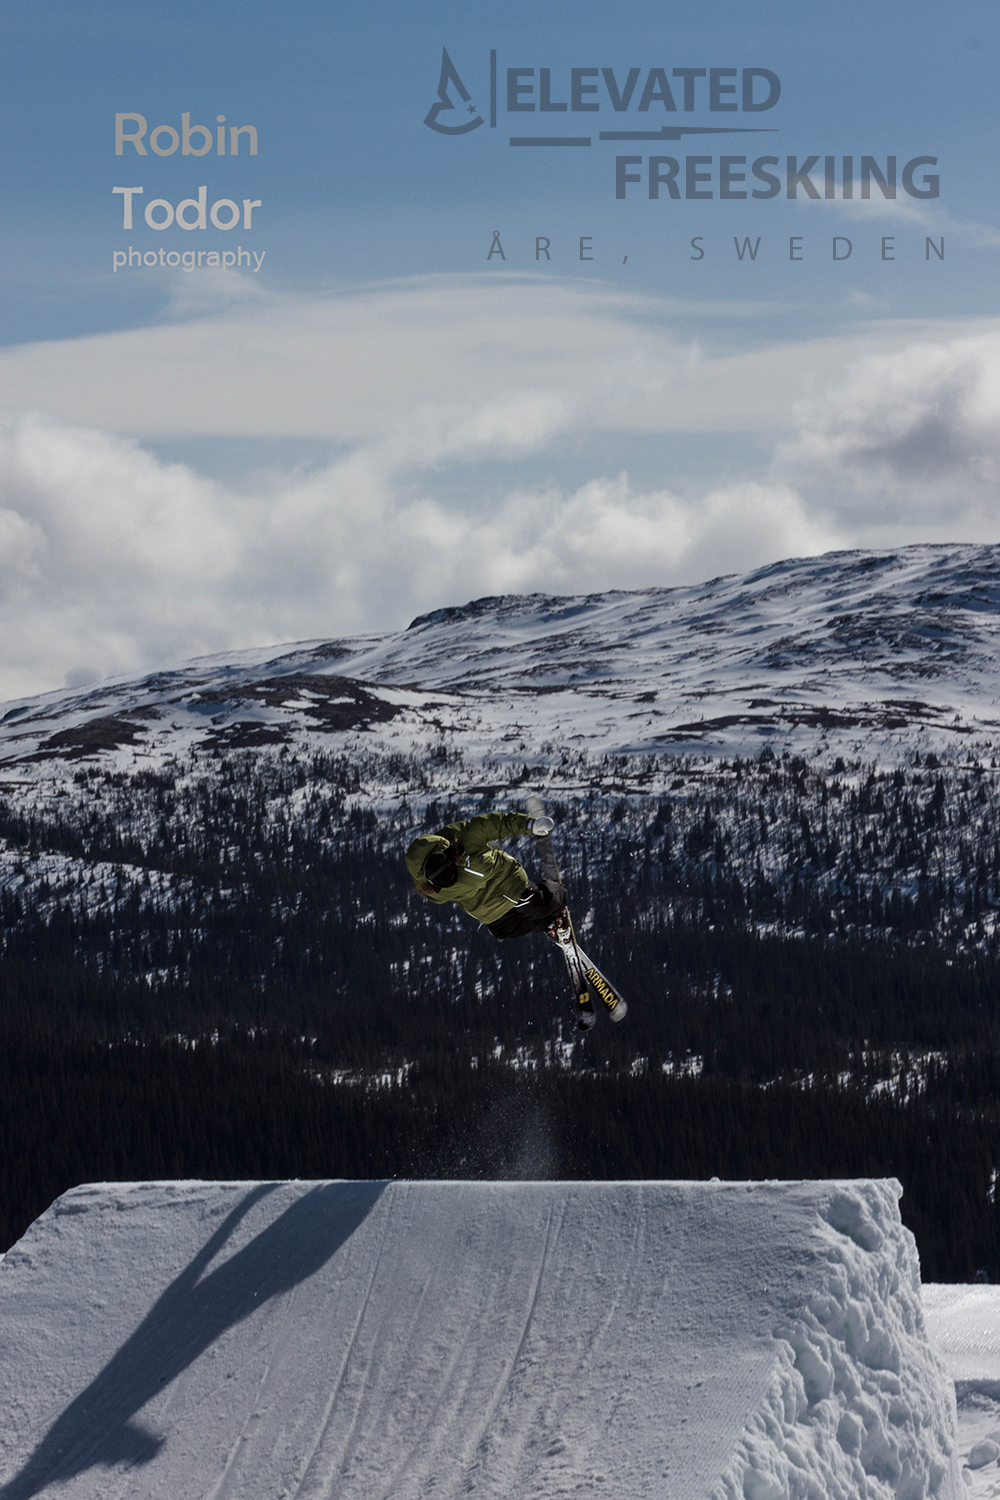 Niklas Hoiem, Elevated Clothing Swedish Freeskier, freeskiing clothing